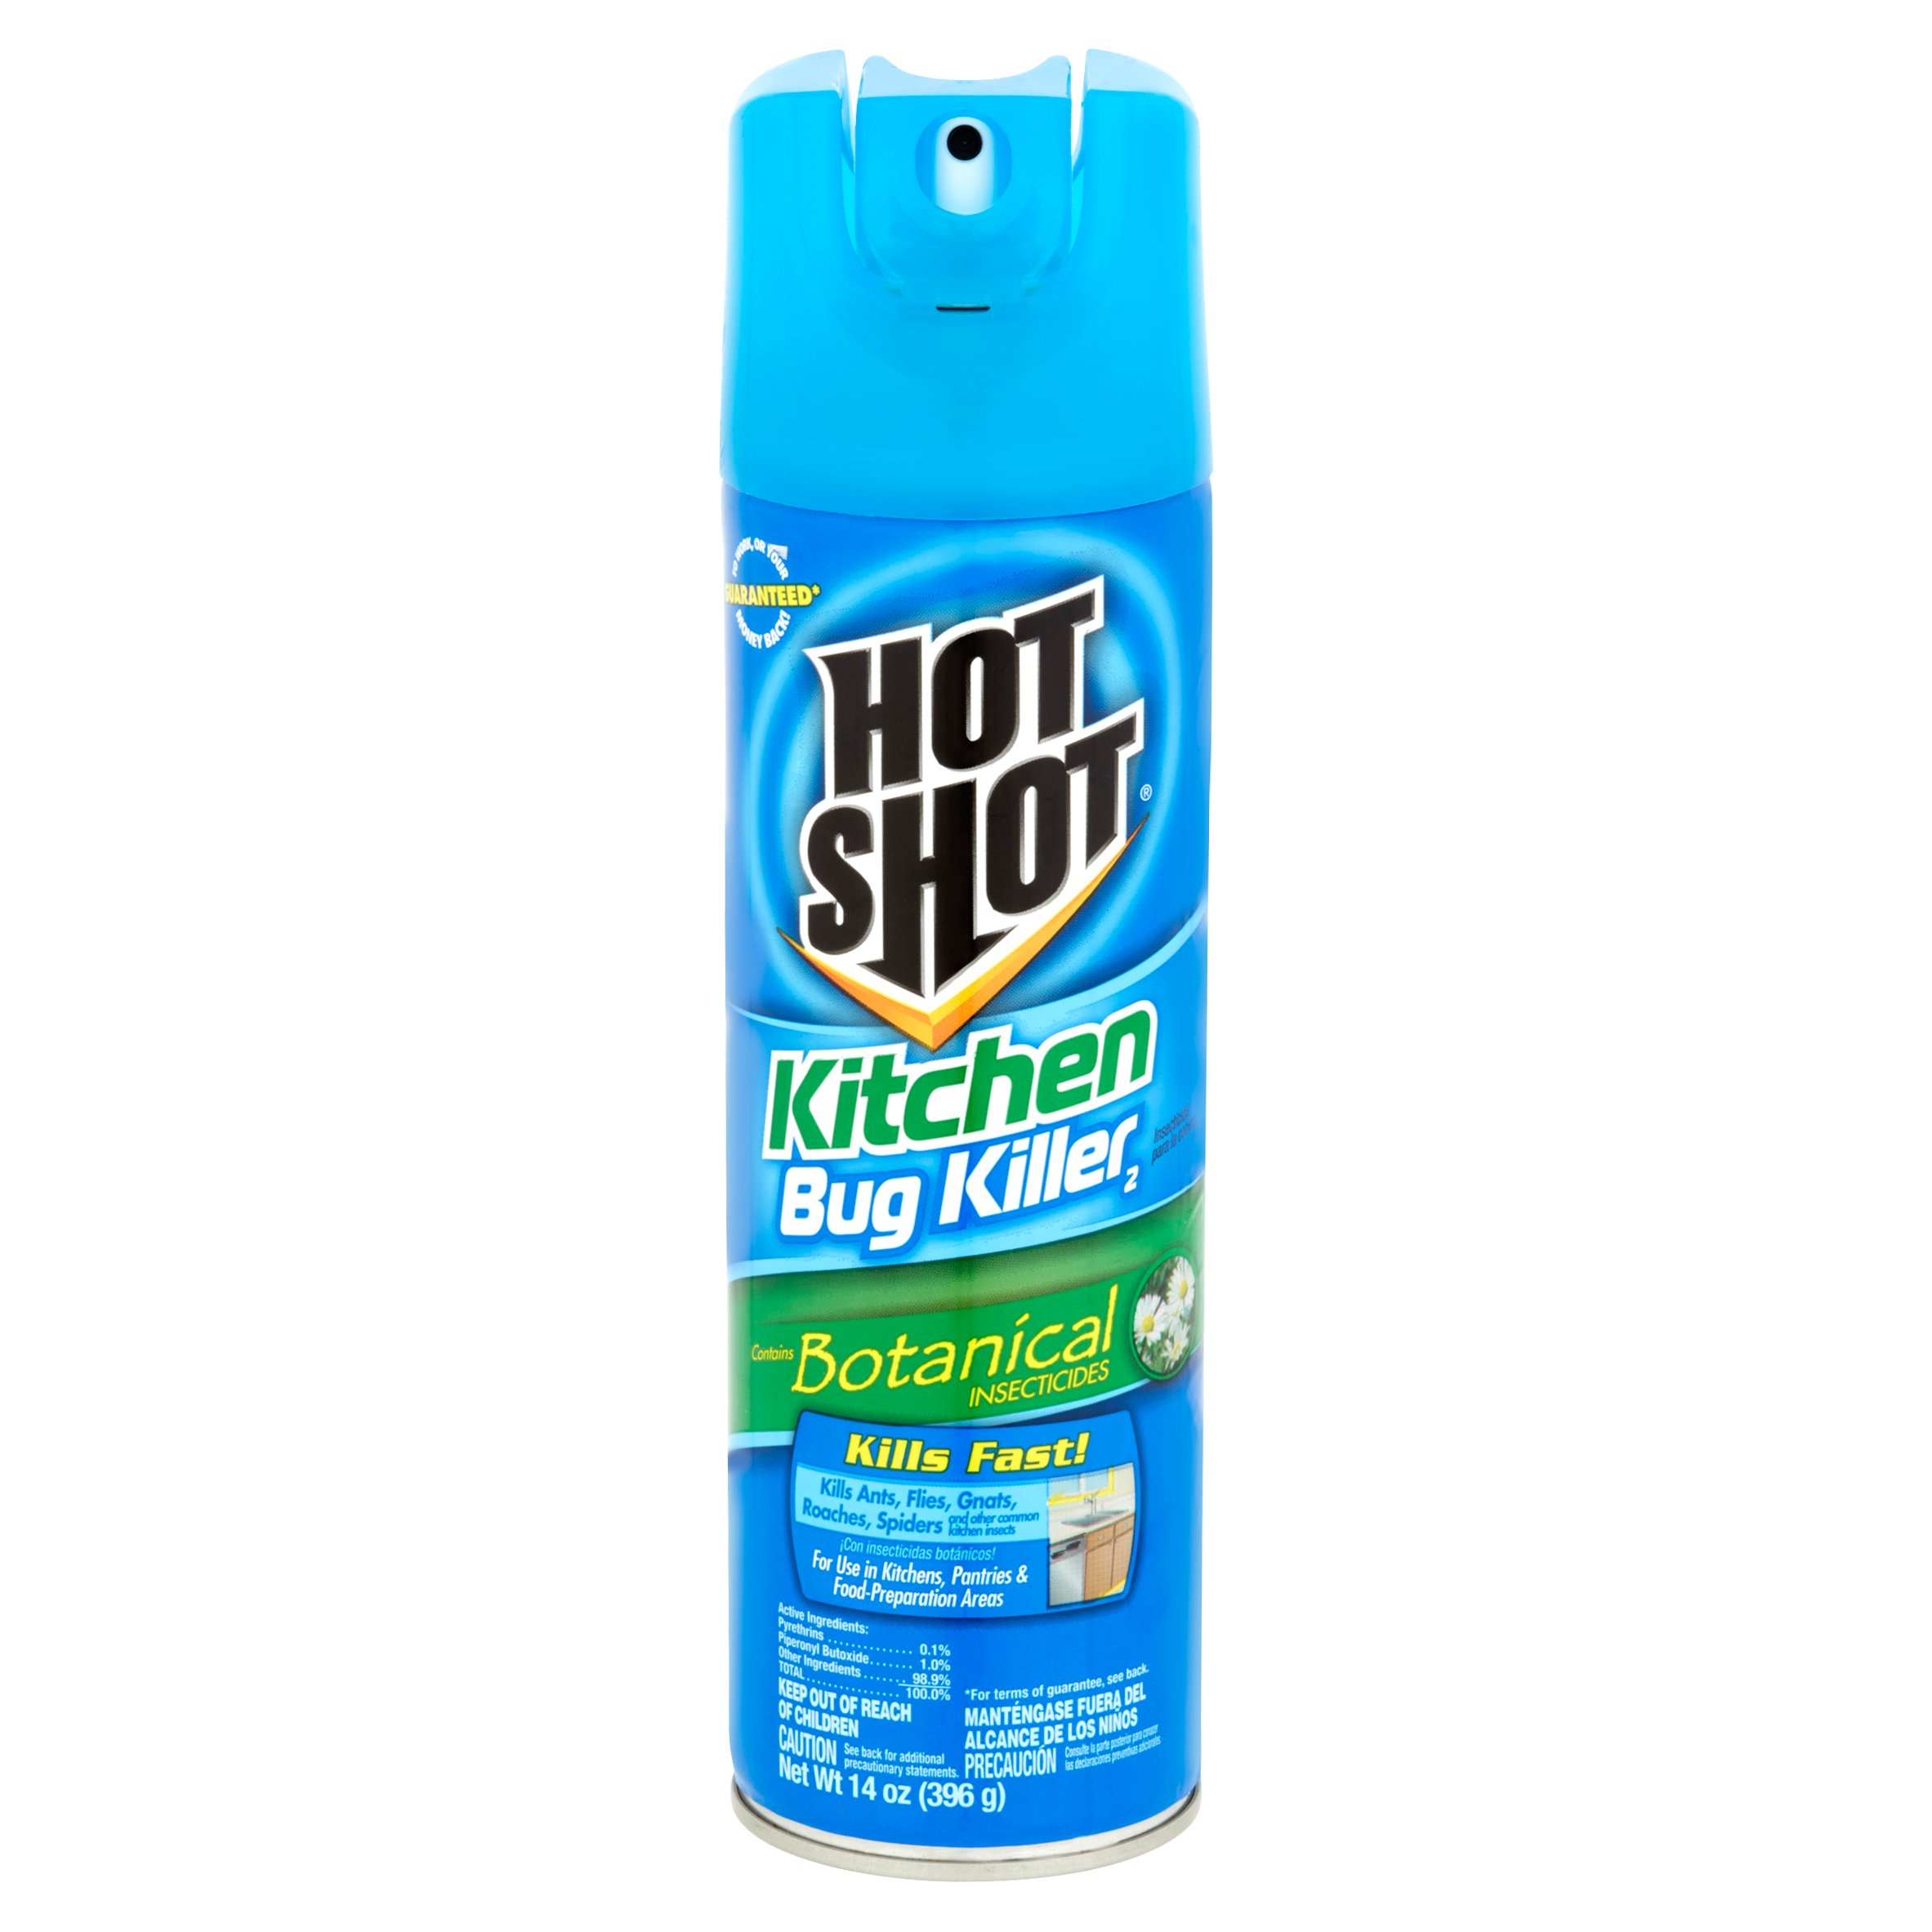 hot shot kitchen bug killer 2, 14 oz - walmart